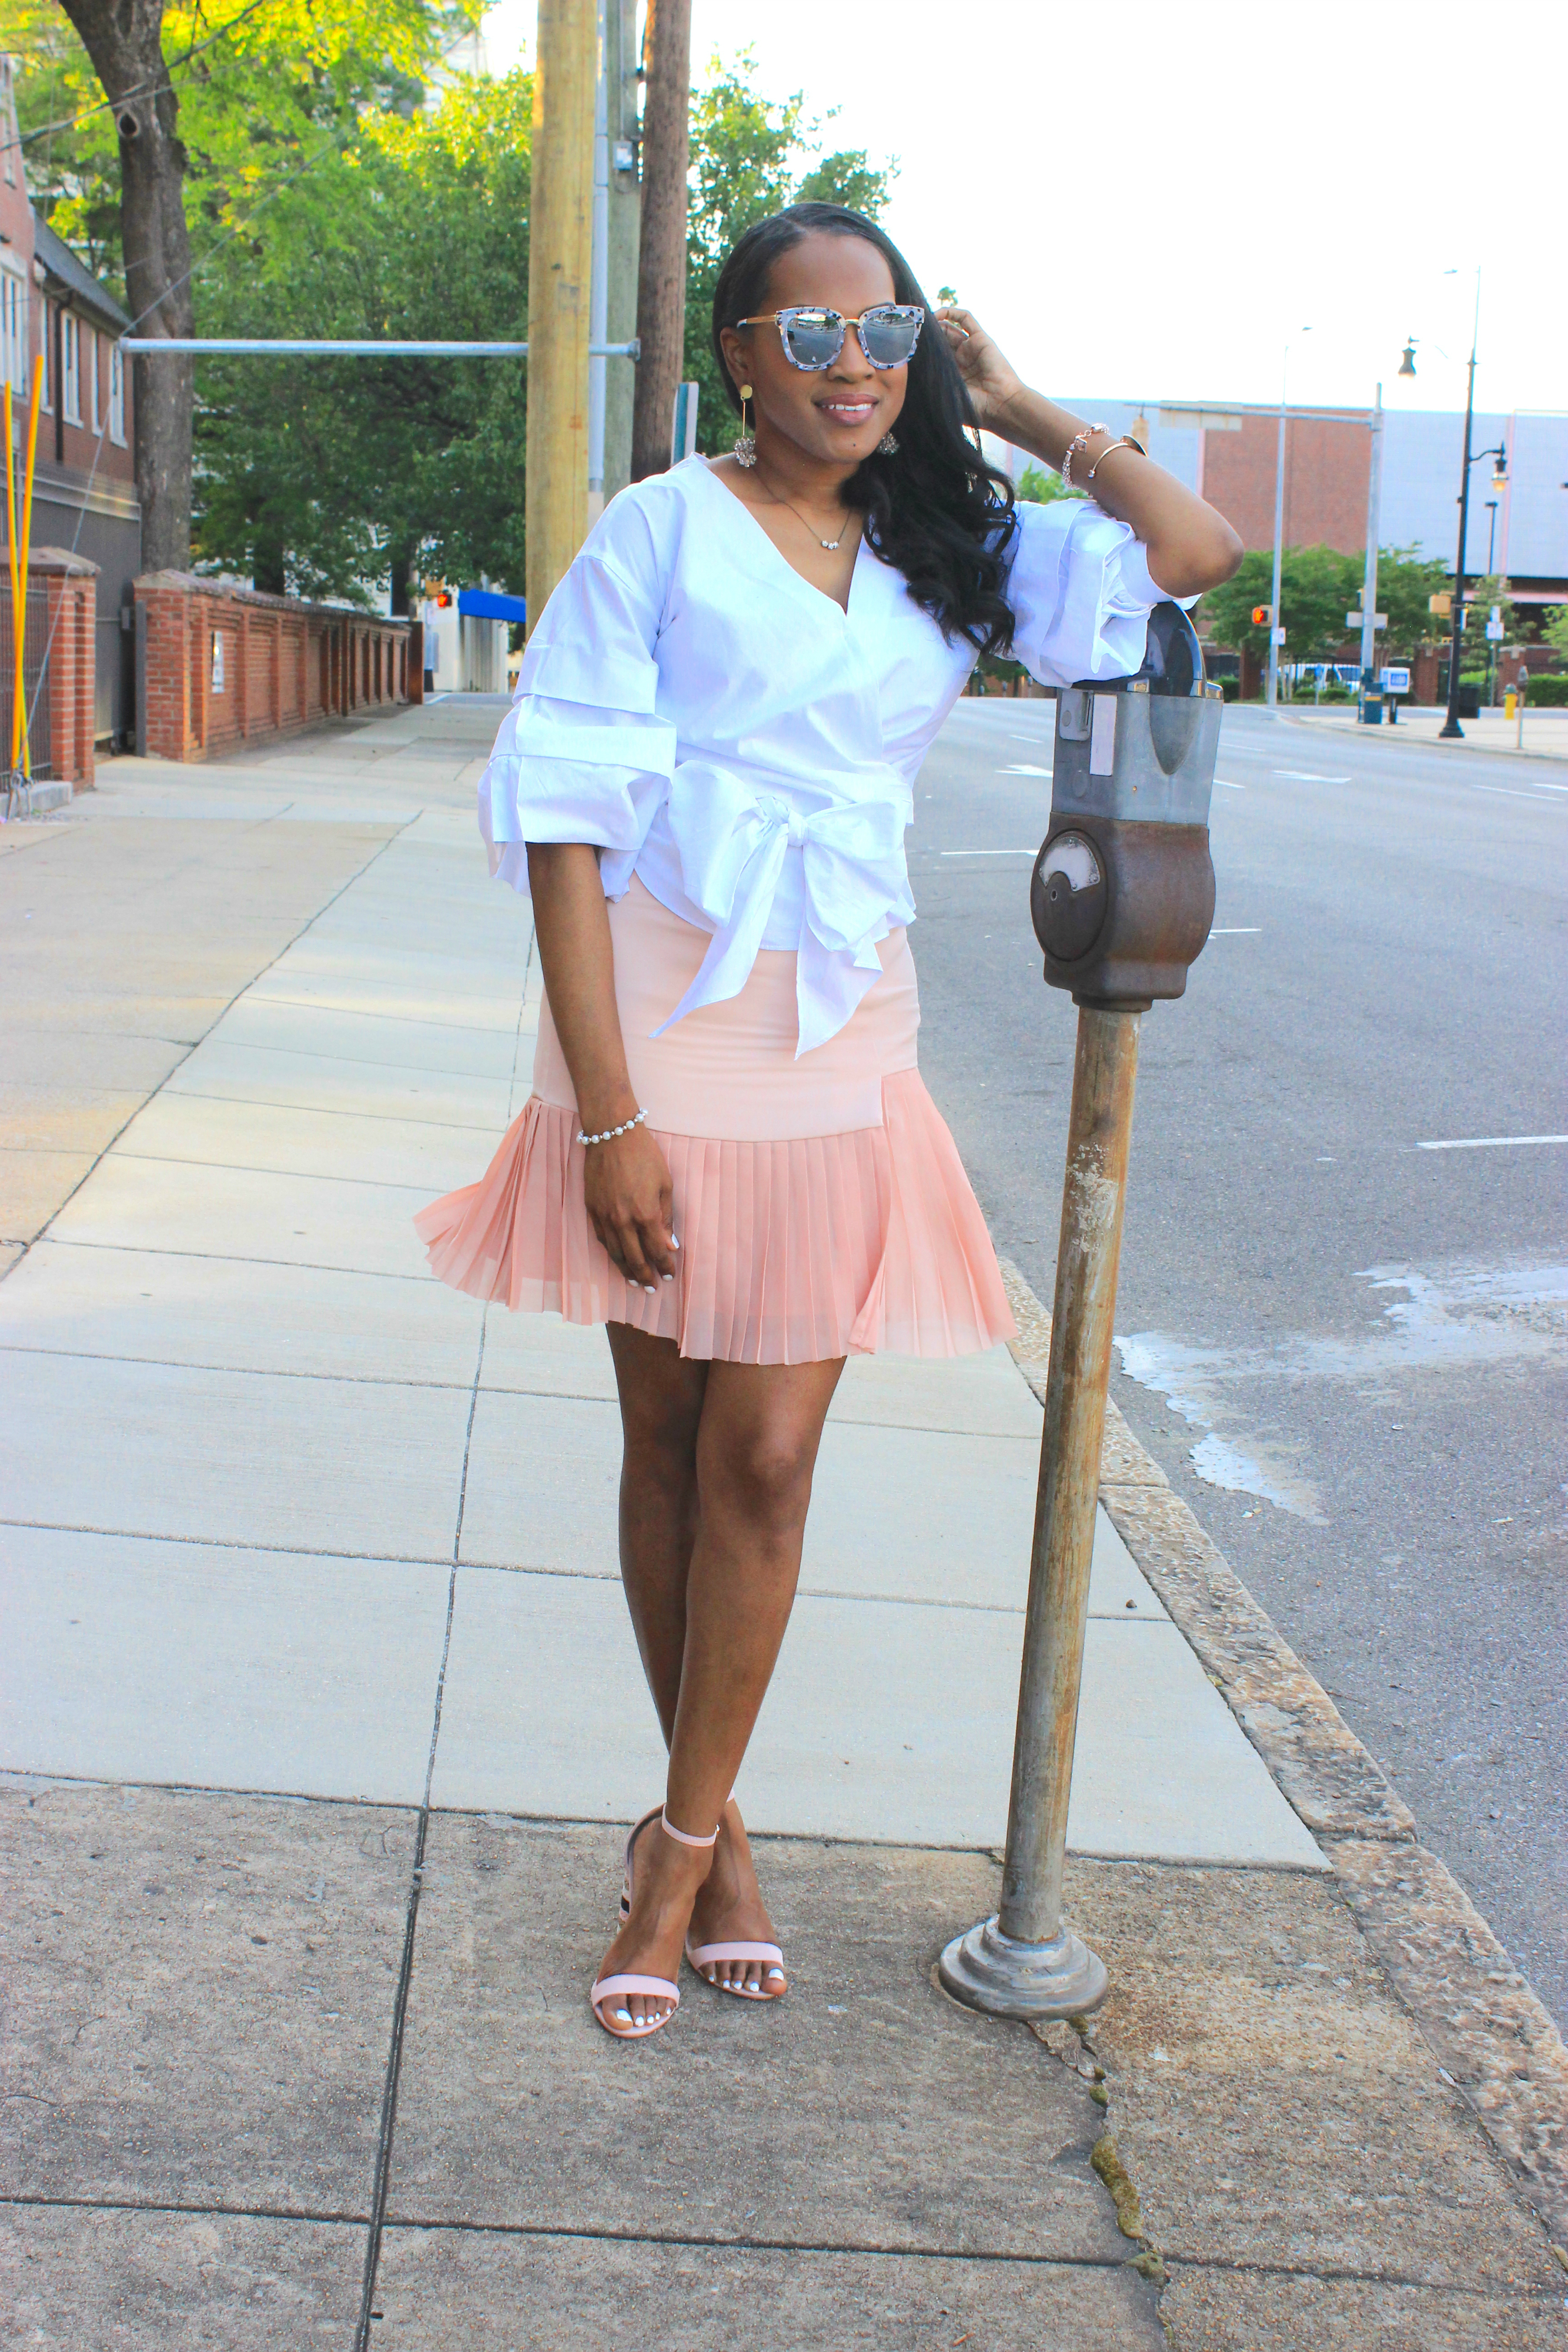 White-puff-sleeve-wrap-blouse-pink-pleated-mini-skirt-justfab-salona-cylinder-heel-sandals-top-Birmingham-blogger-Alabama-bloggers-oohlalablog-6